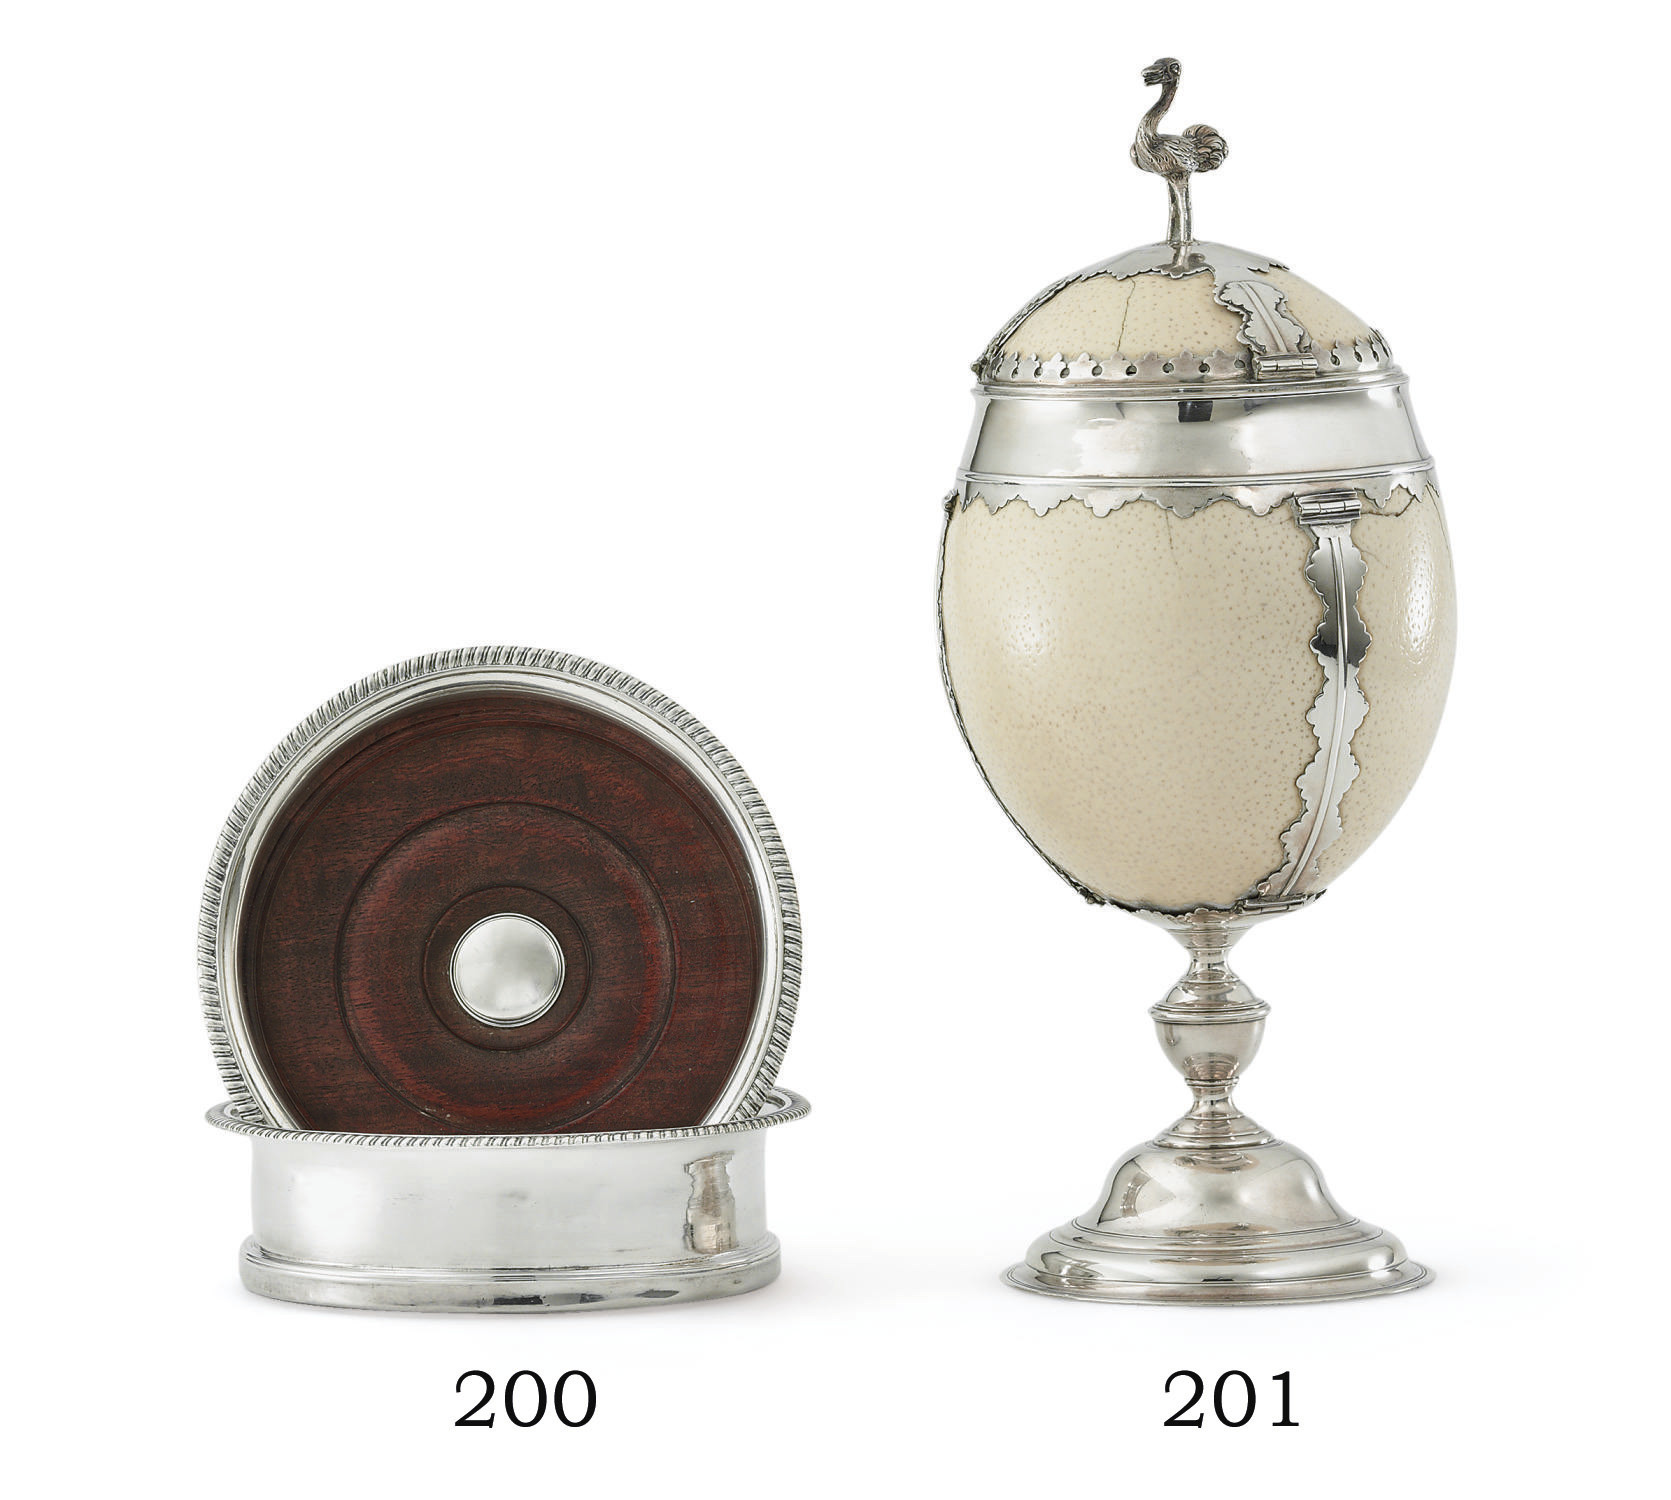 A GEORGE II SILVER-MOUNTED OSTRICH EGG CUP AND COVER